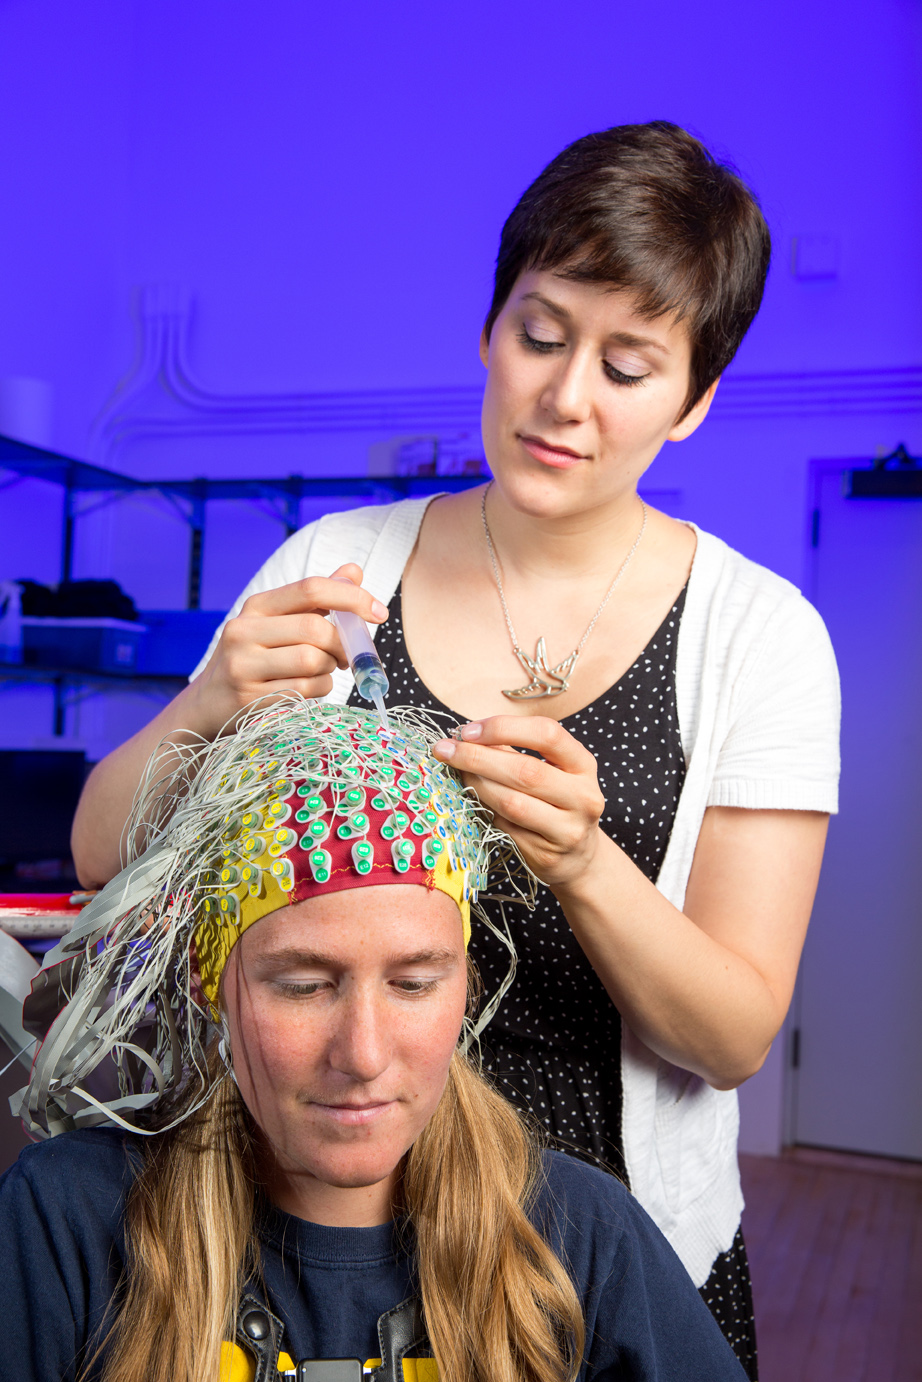 Subject being fitted with electrodes, which will help researchers look at his brain activity during a fall. Image credit: Ferris Lab